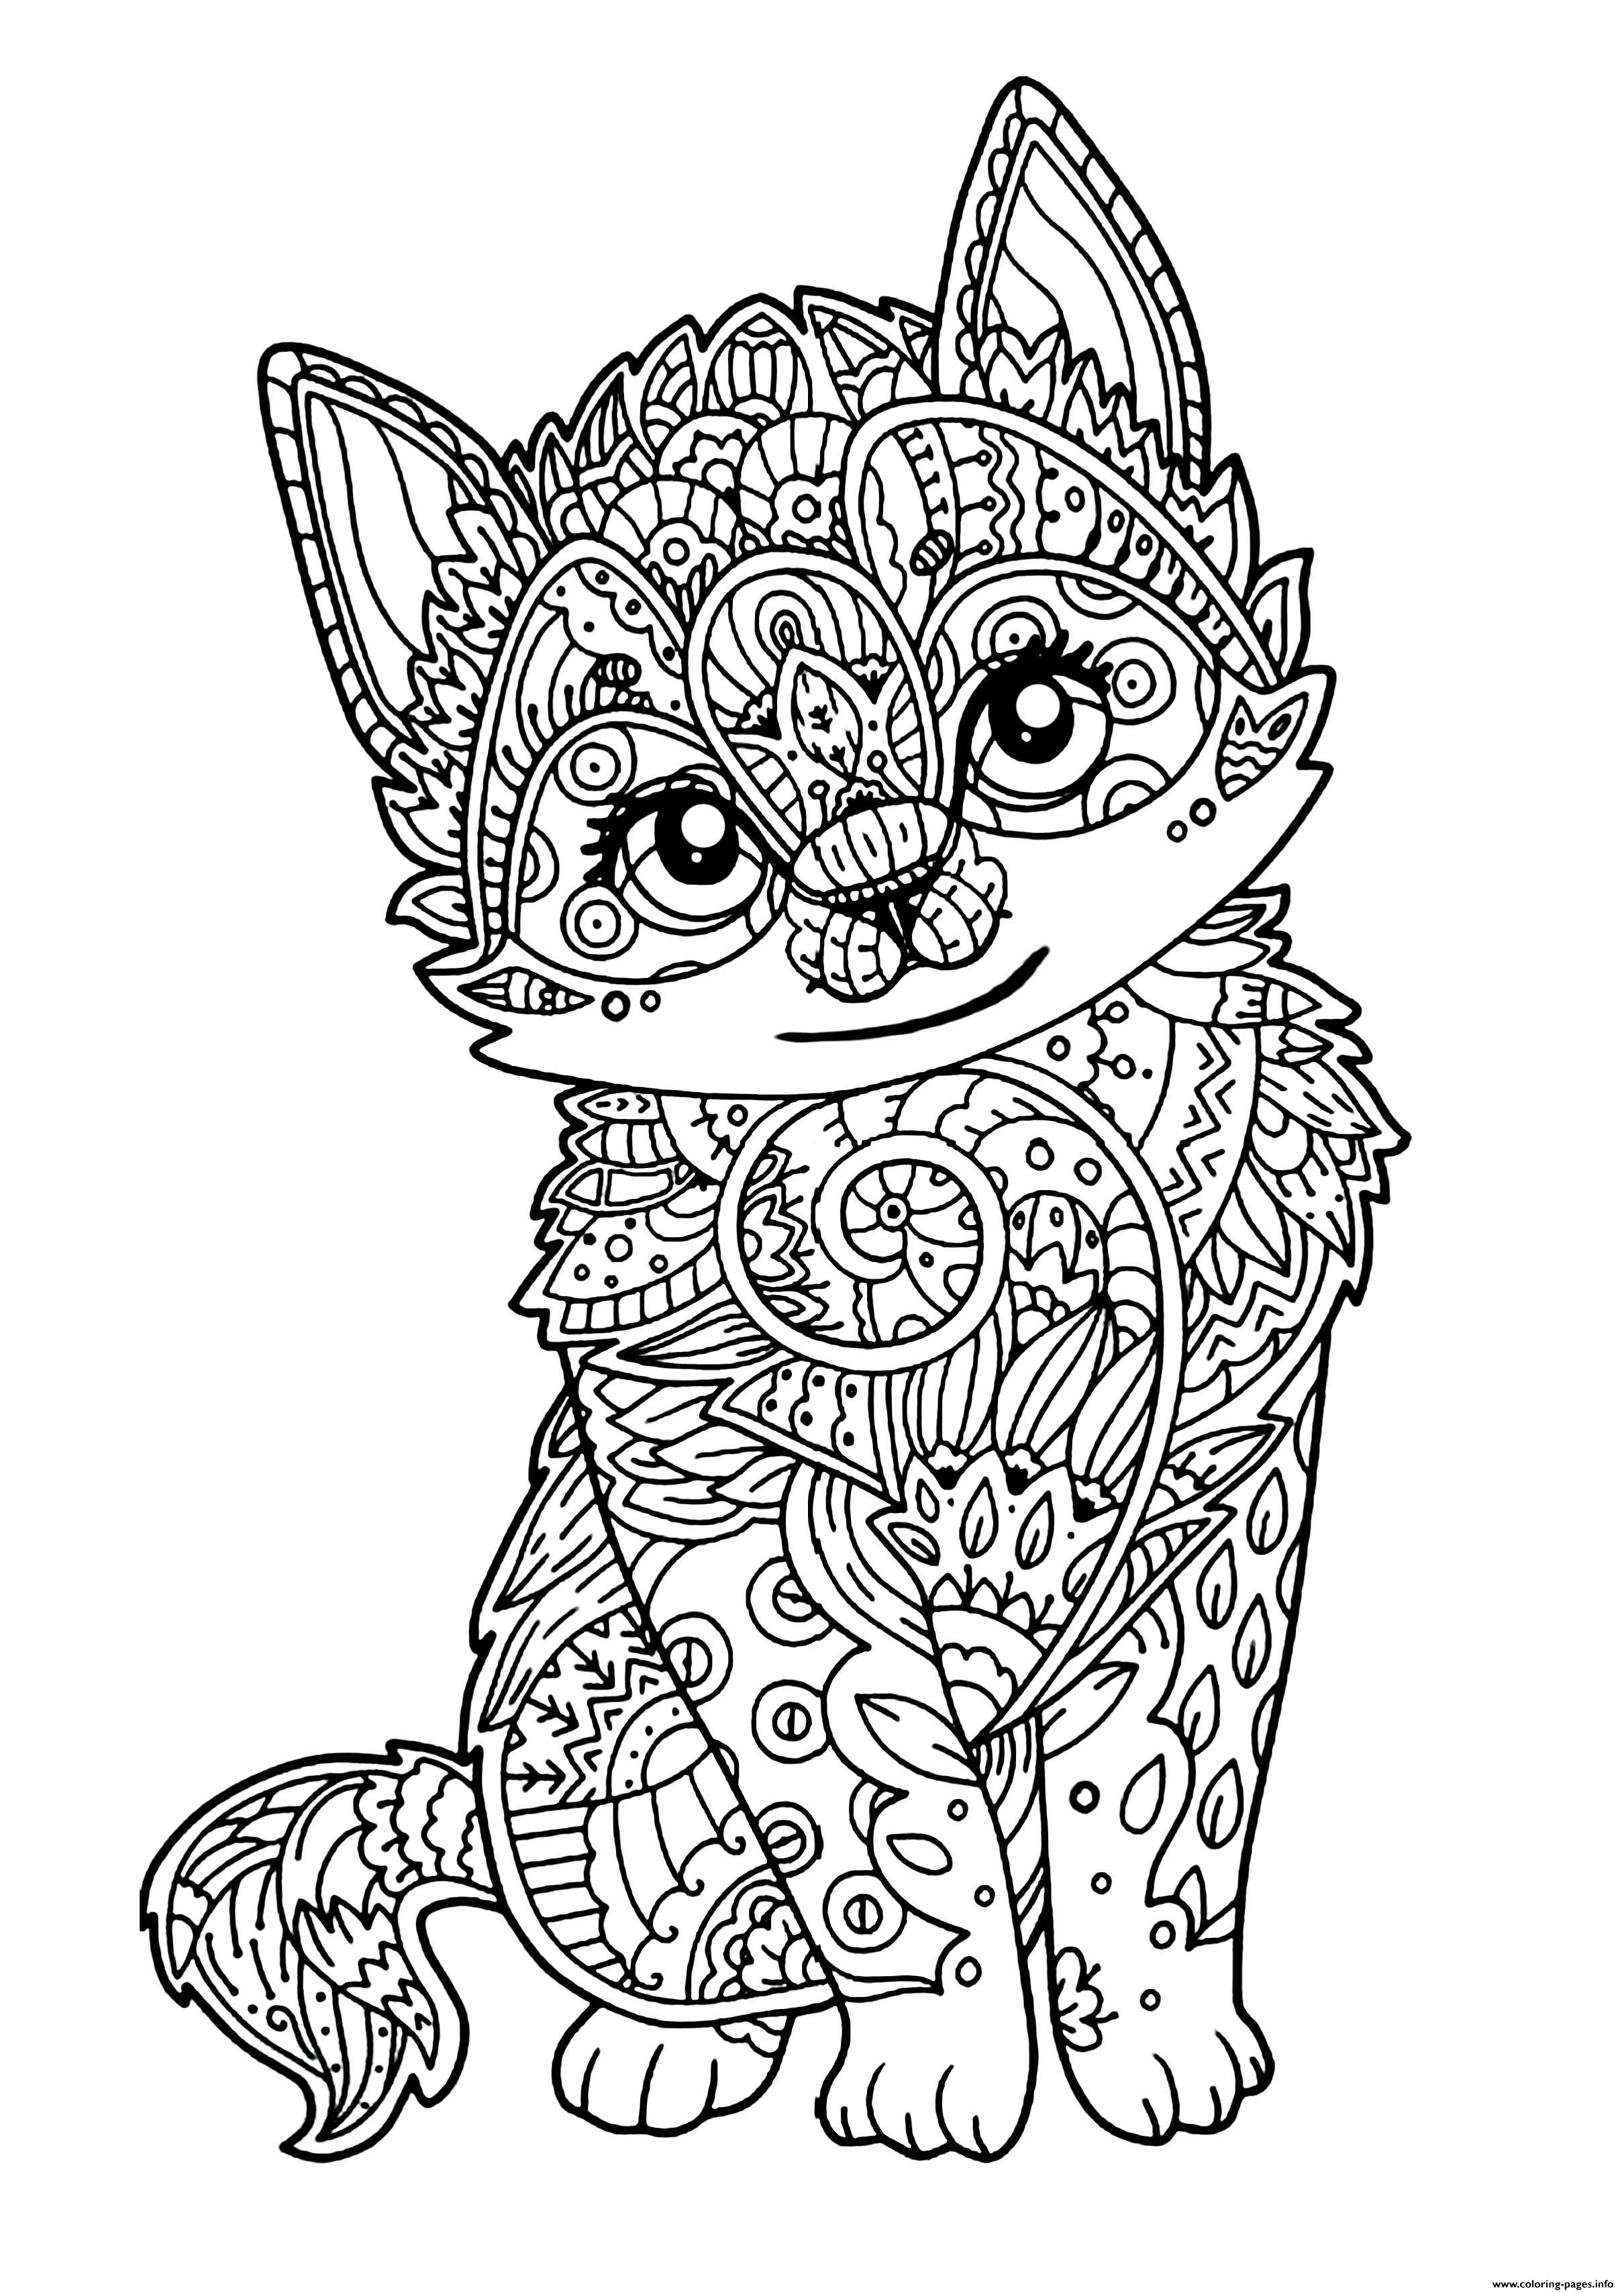 cute cat adult zentangle coloring pages printable free printable coloring pages zentangle zentangle coloring pages to print